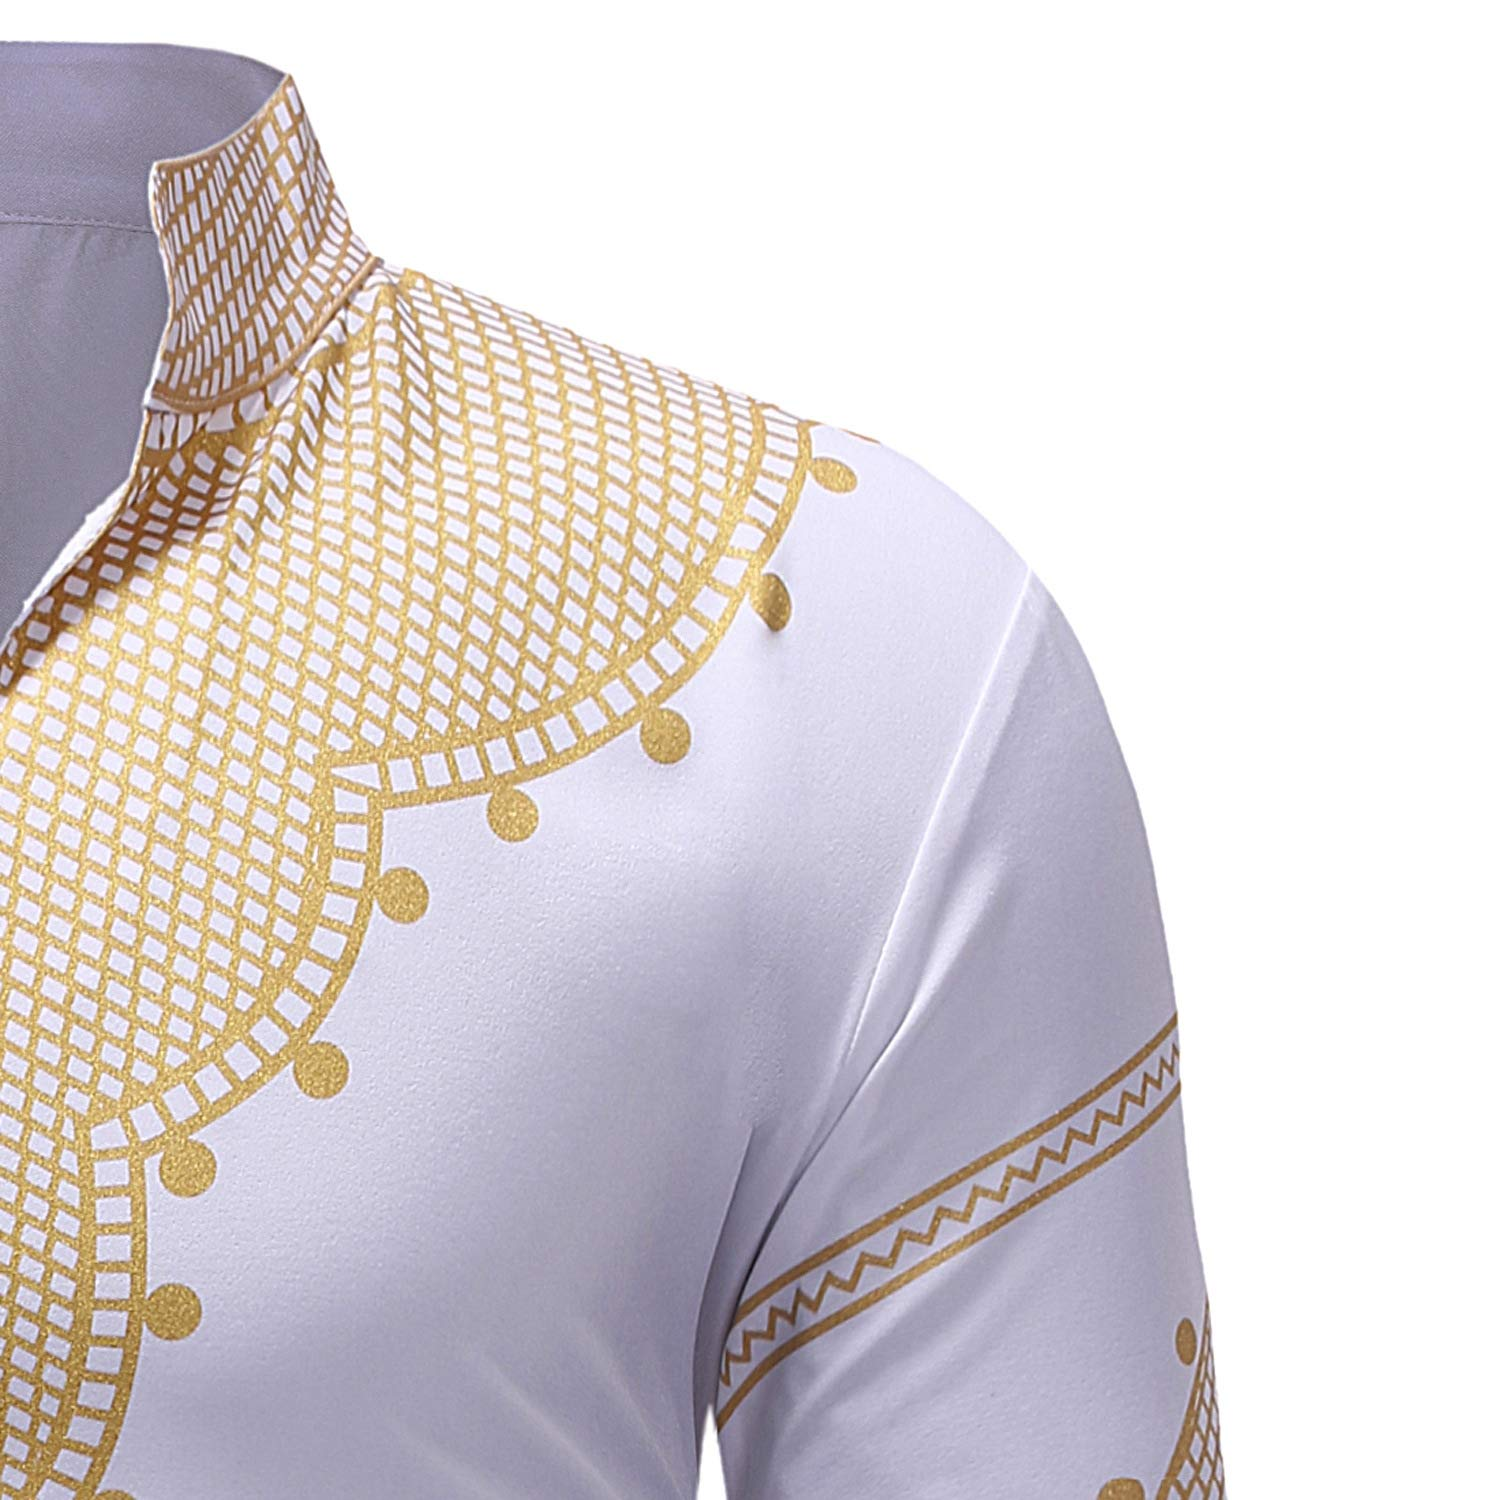 Fieer Mens African Dashiki Causal Stand Collar V-Neck Long-Sleeve Tees